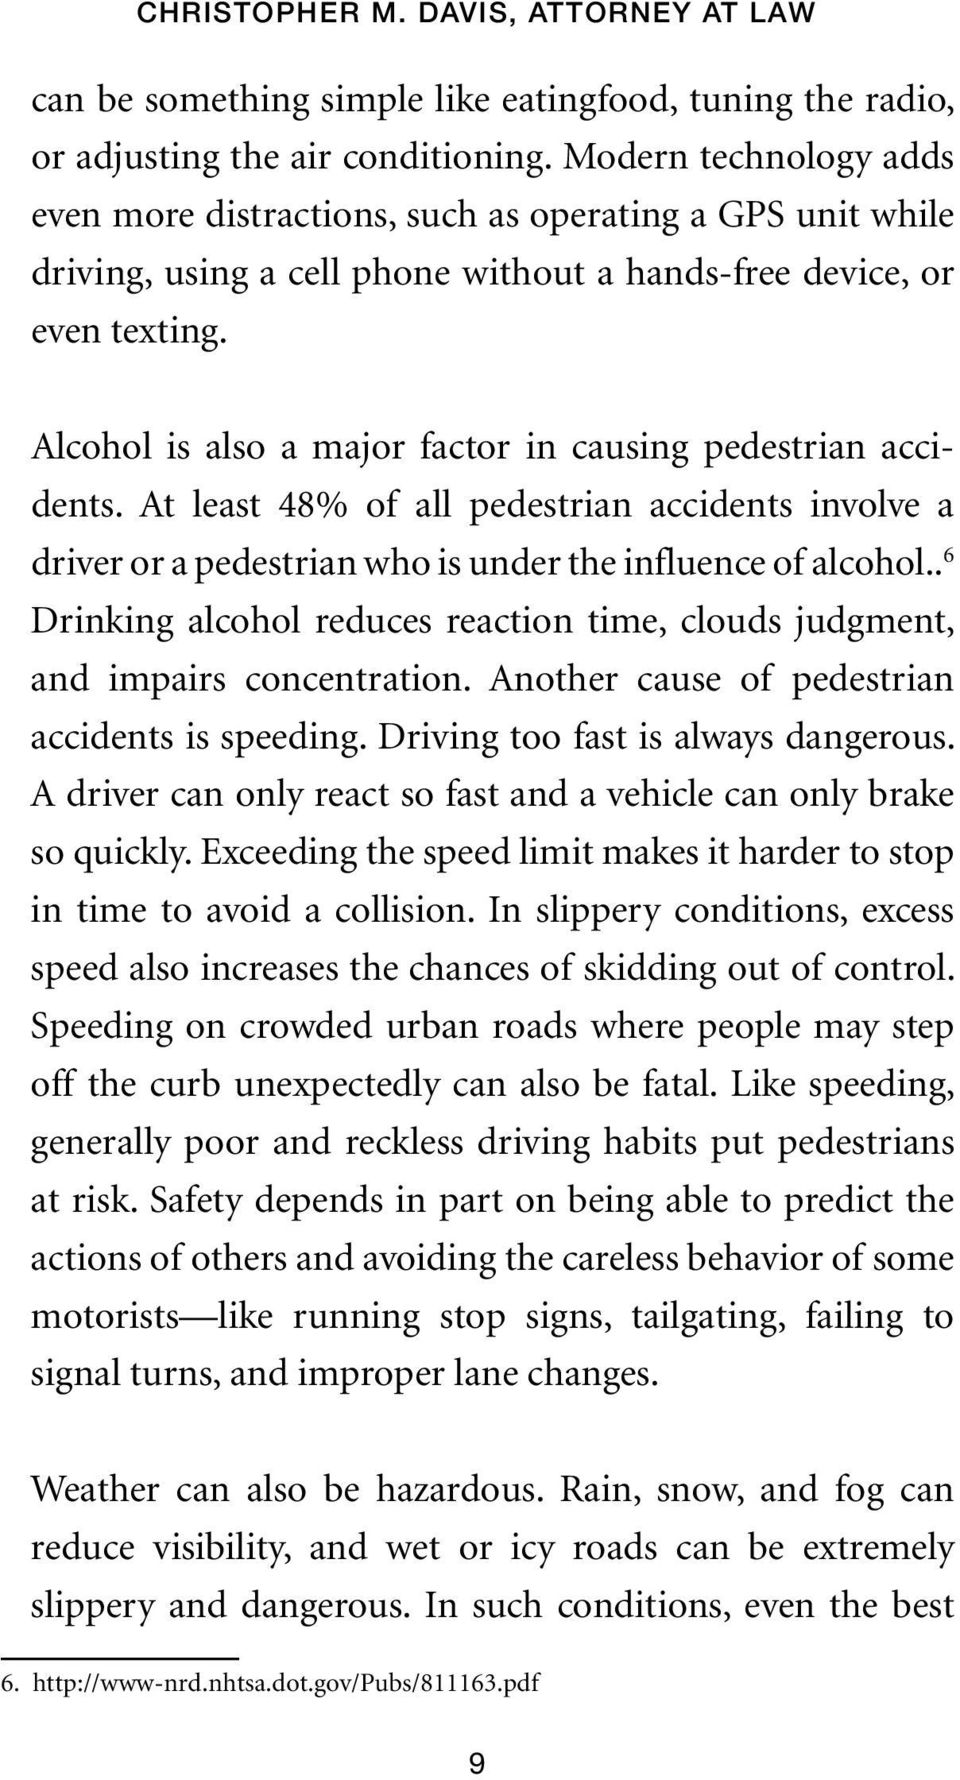 Alcohol is also a major factor in causing pedestrian accidents. At least 48% of all pedestrian accidents involve a driver or a pedestrian who is under the influence of alcohol.